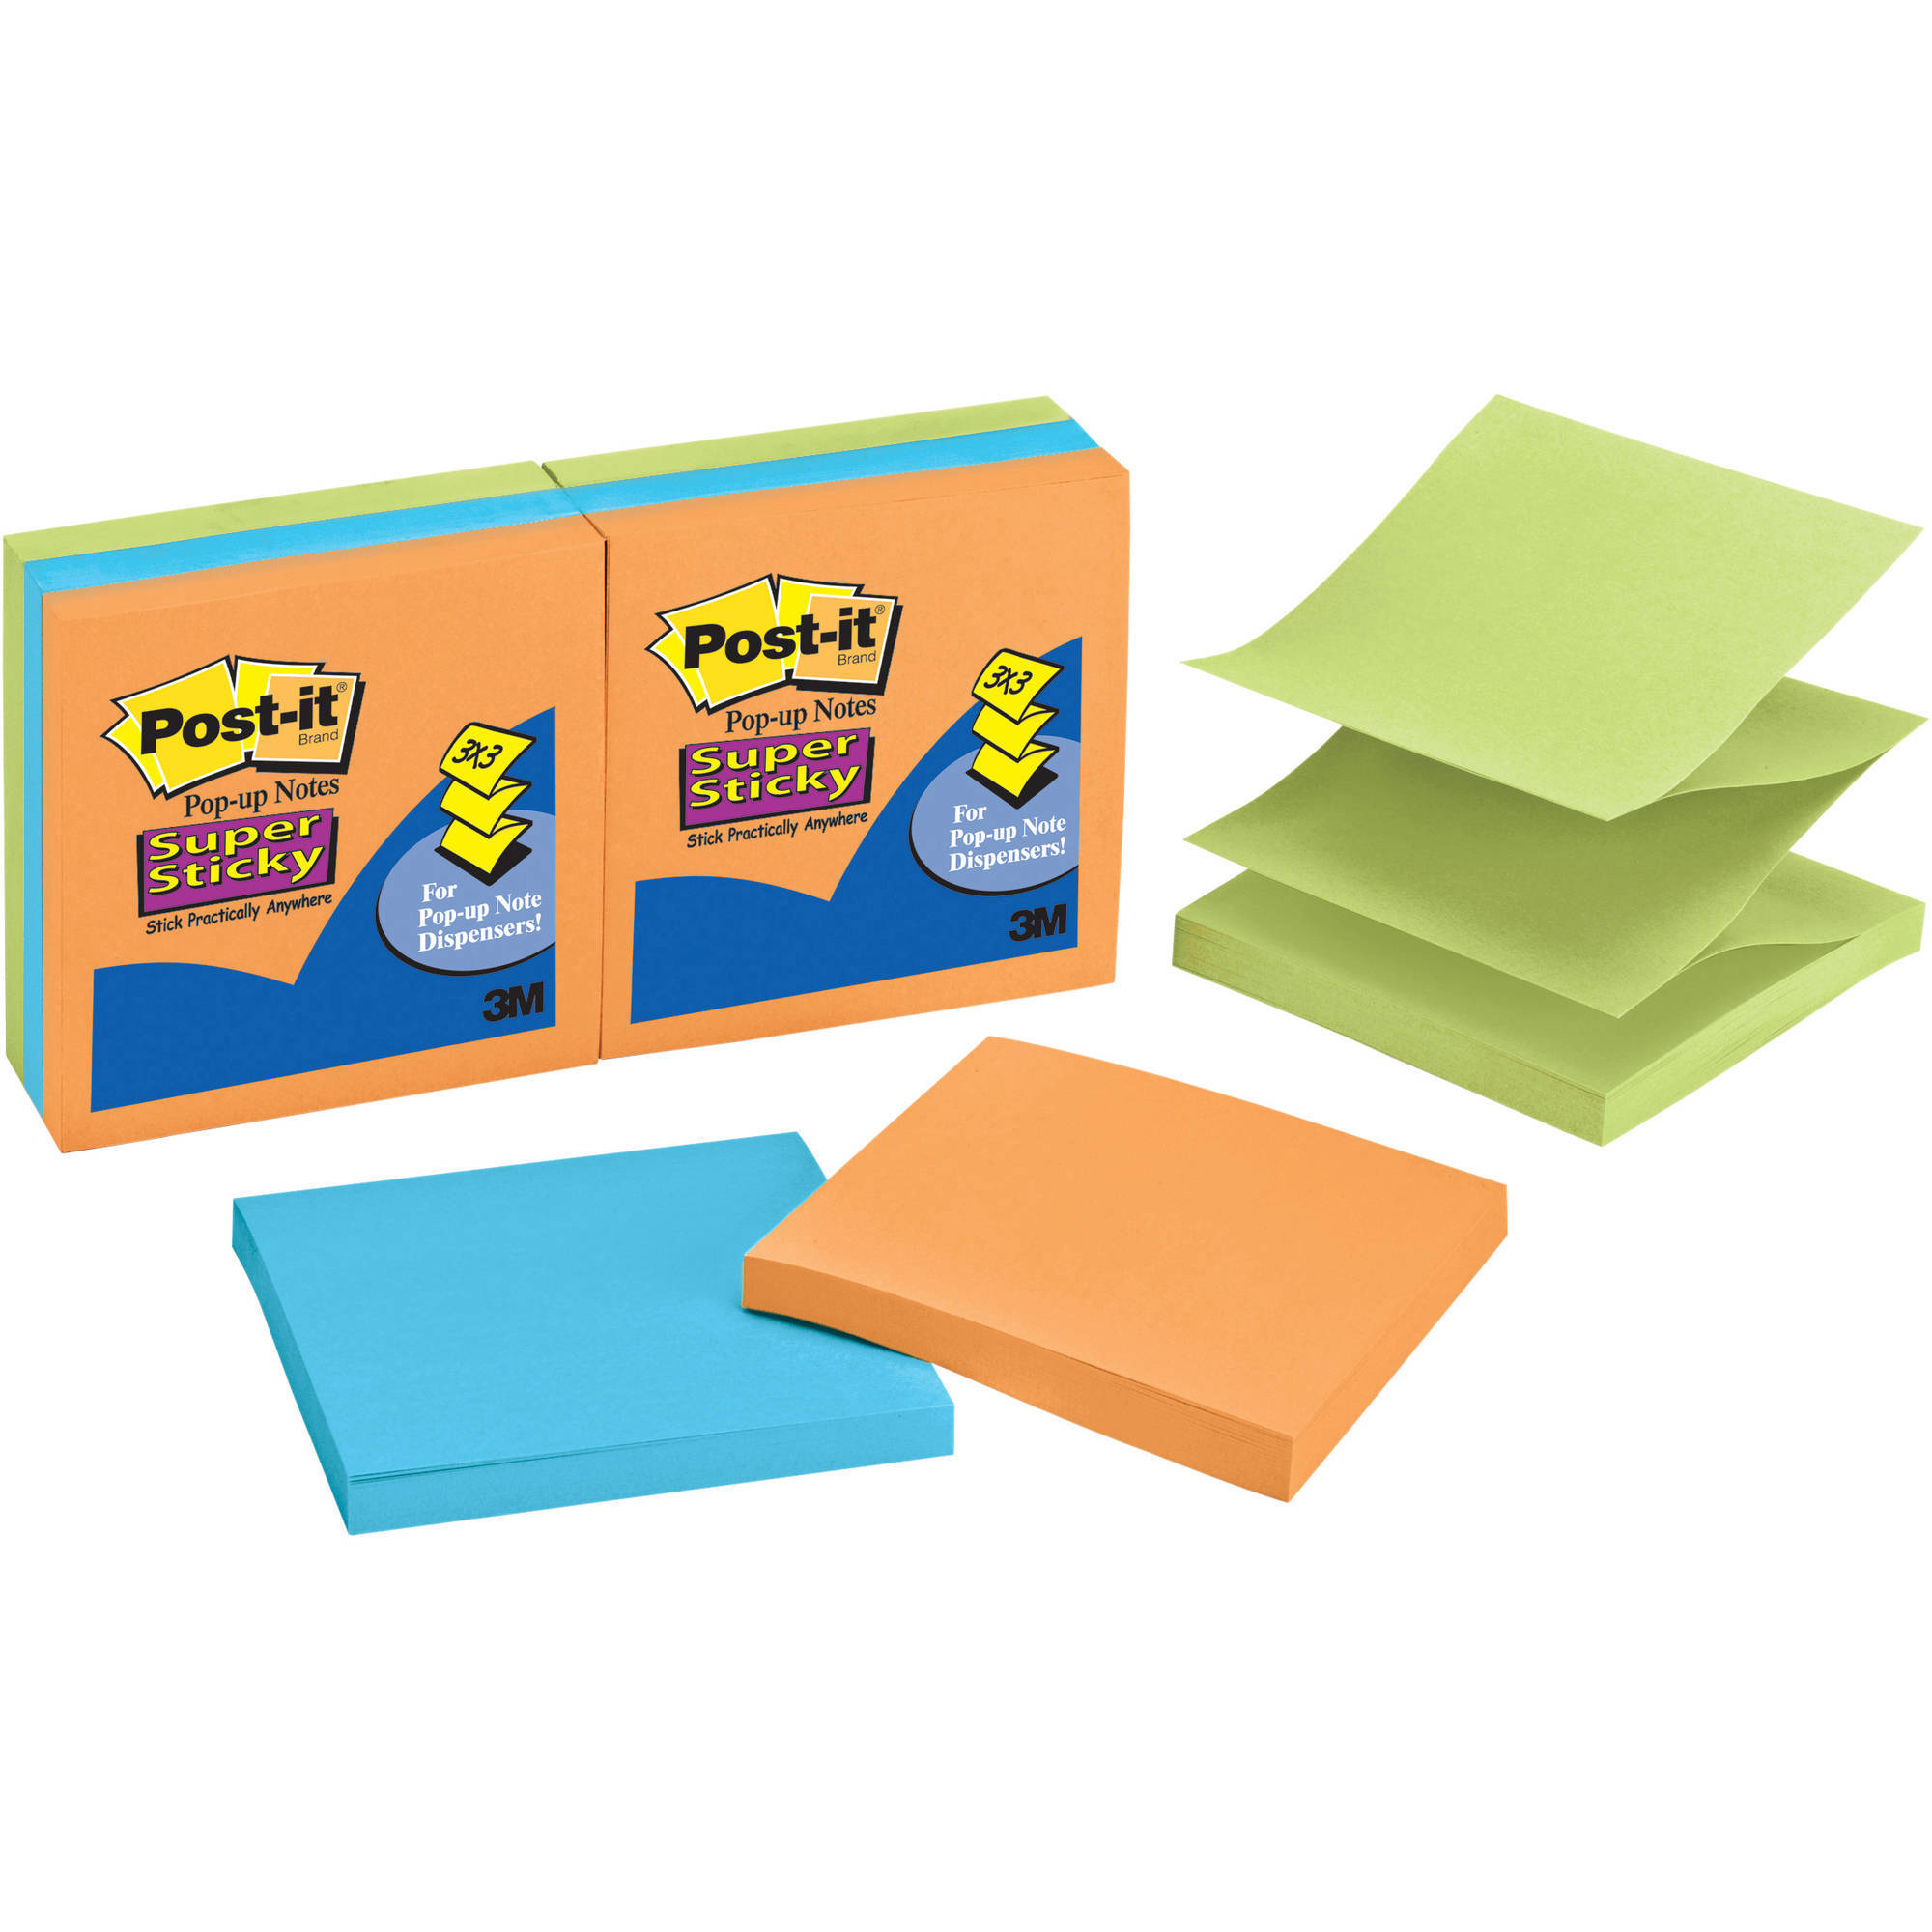 "Post-it Super Sticky Pop-up 3"" x 3"" Notes, 90 sheets per pad, 6 pads per pack"